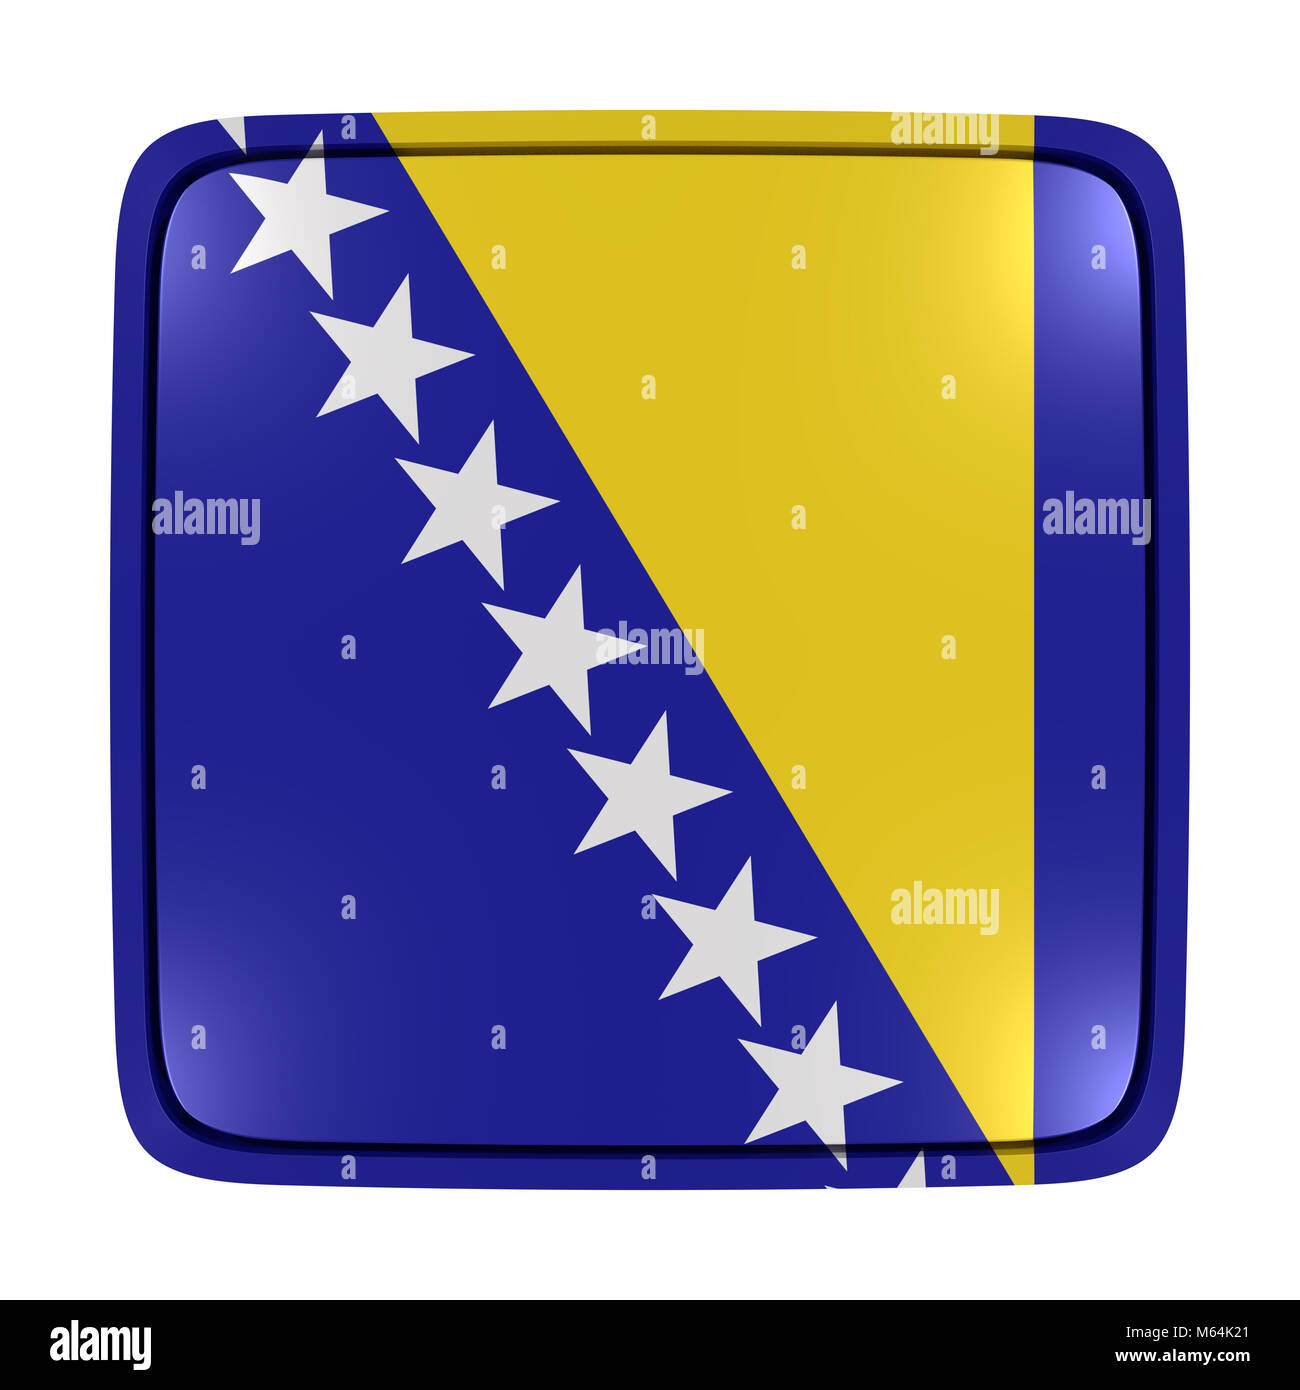 3d rendering of a Bosnia and Herzegovina flag icon. Isolated on white background. - Stock Image